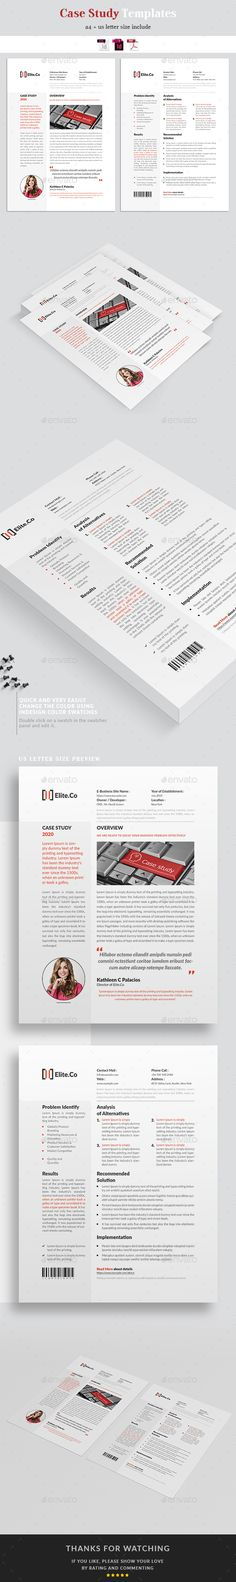 Newsletter Templates | Newsletter templates, Template and Print ...